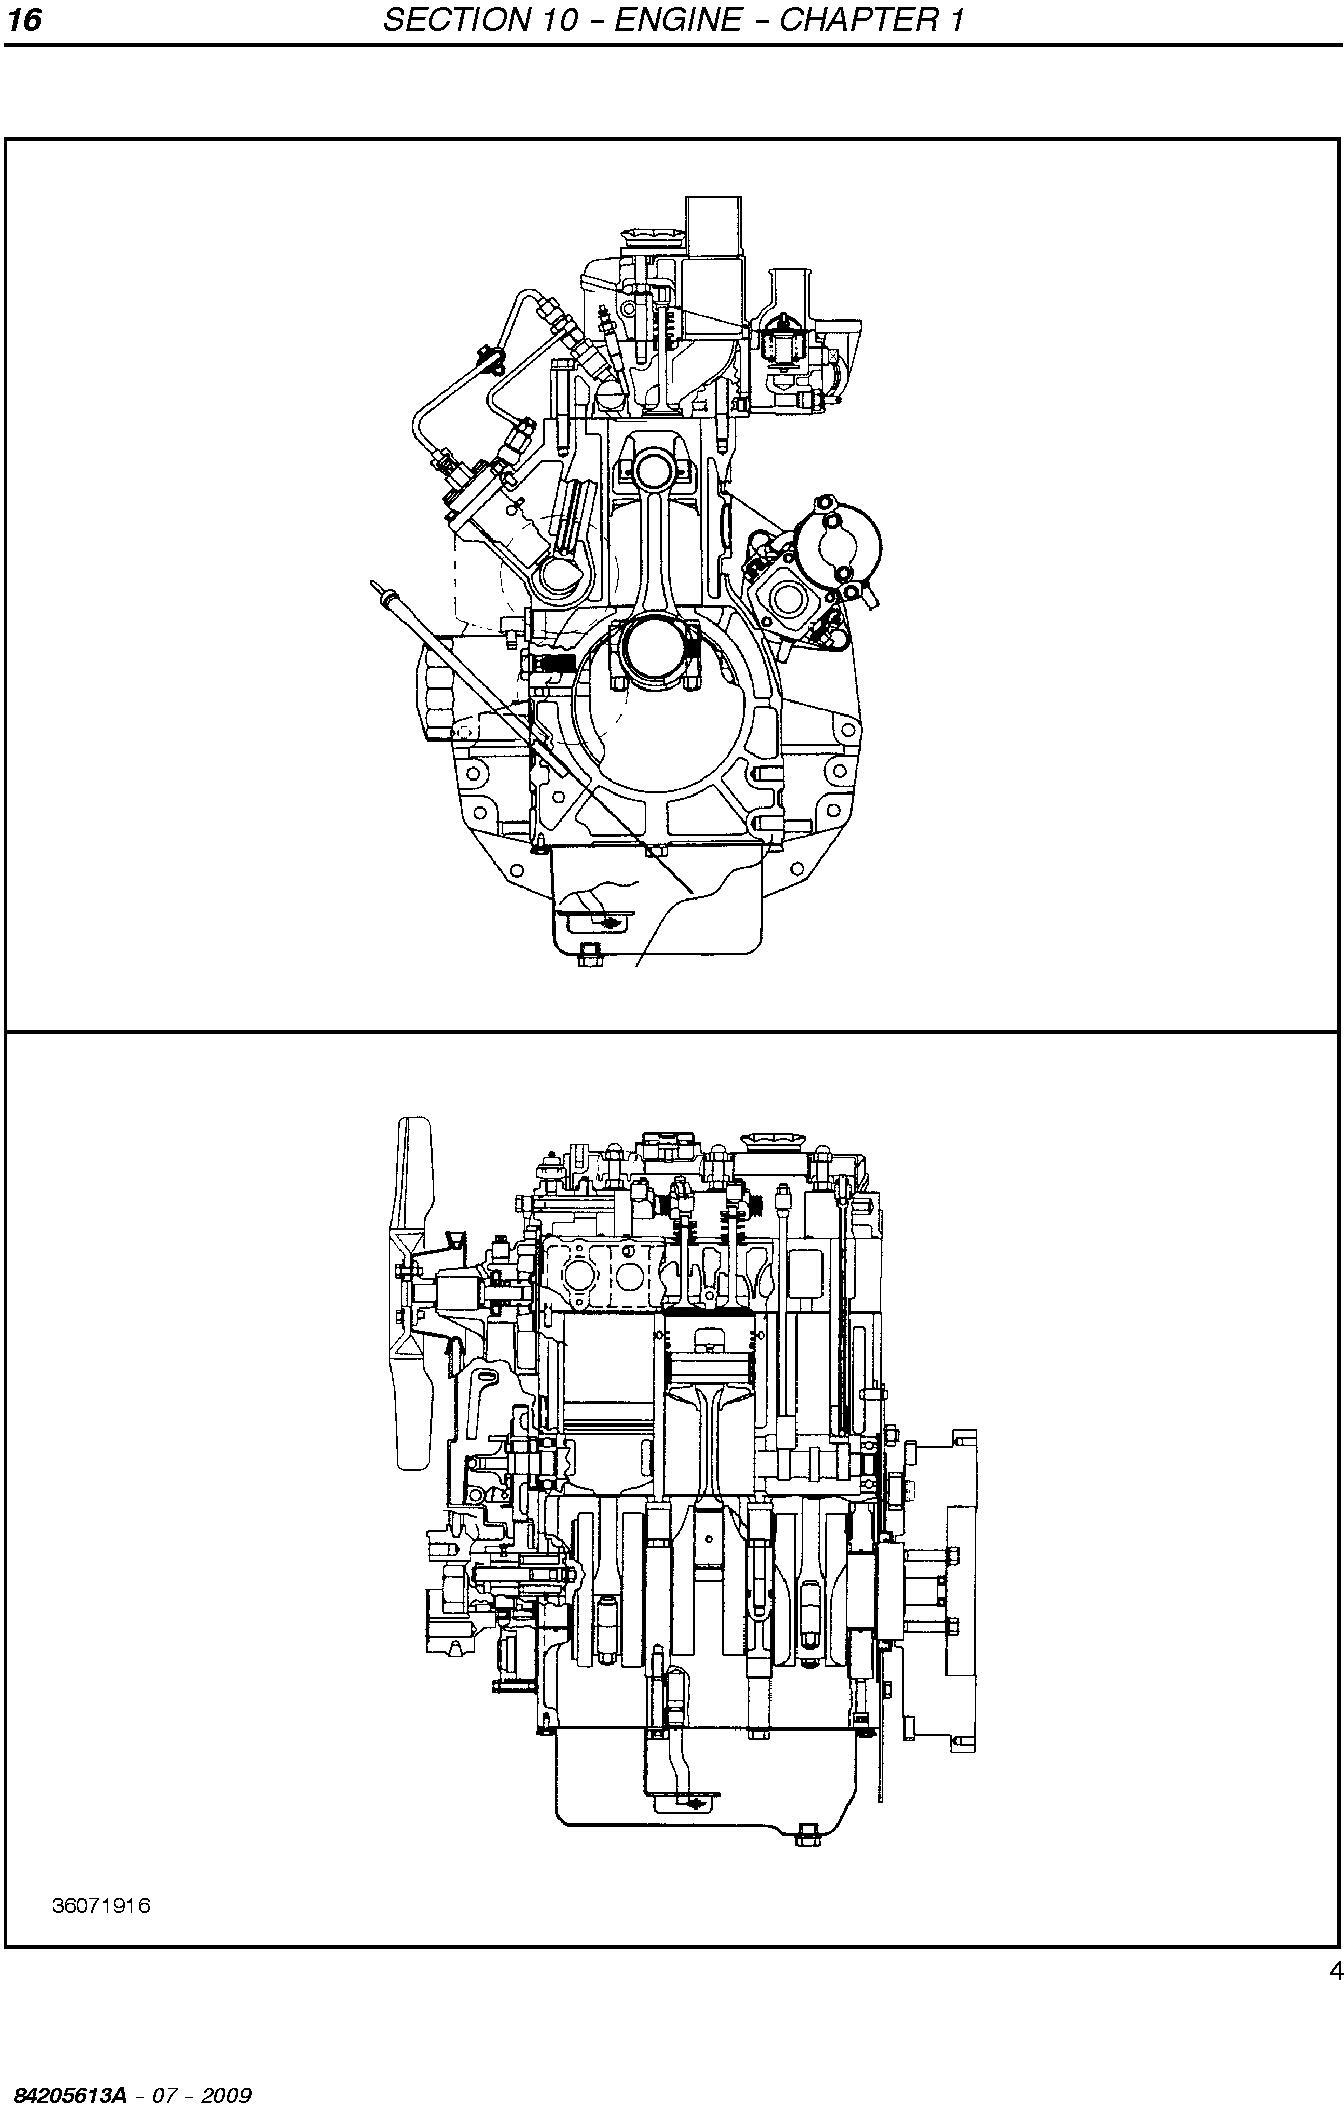 New Holland T1560, T1570 Compact Tractor Service Manual - 2